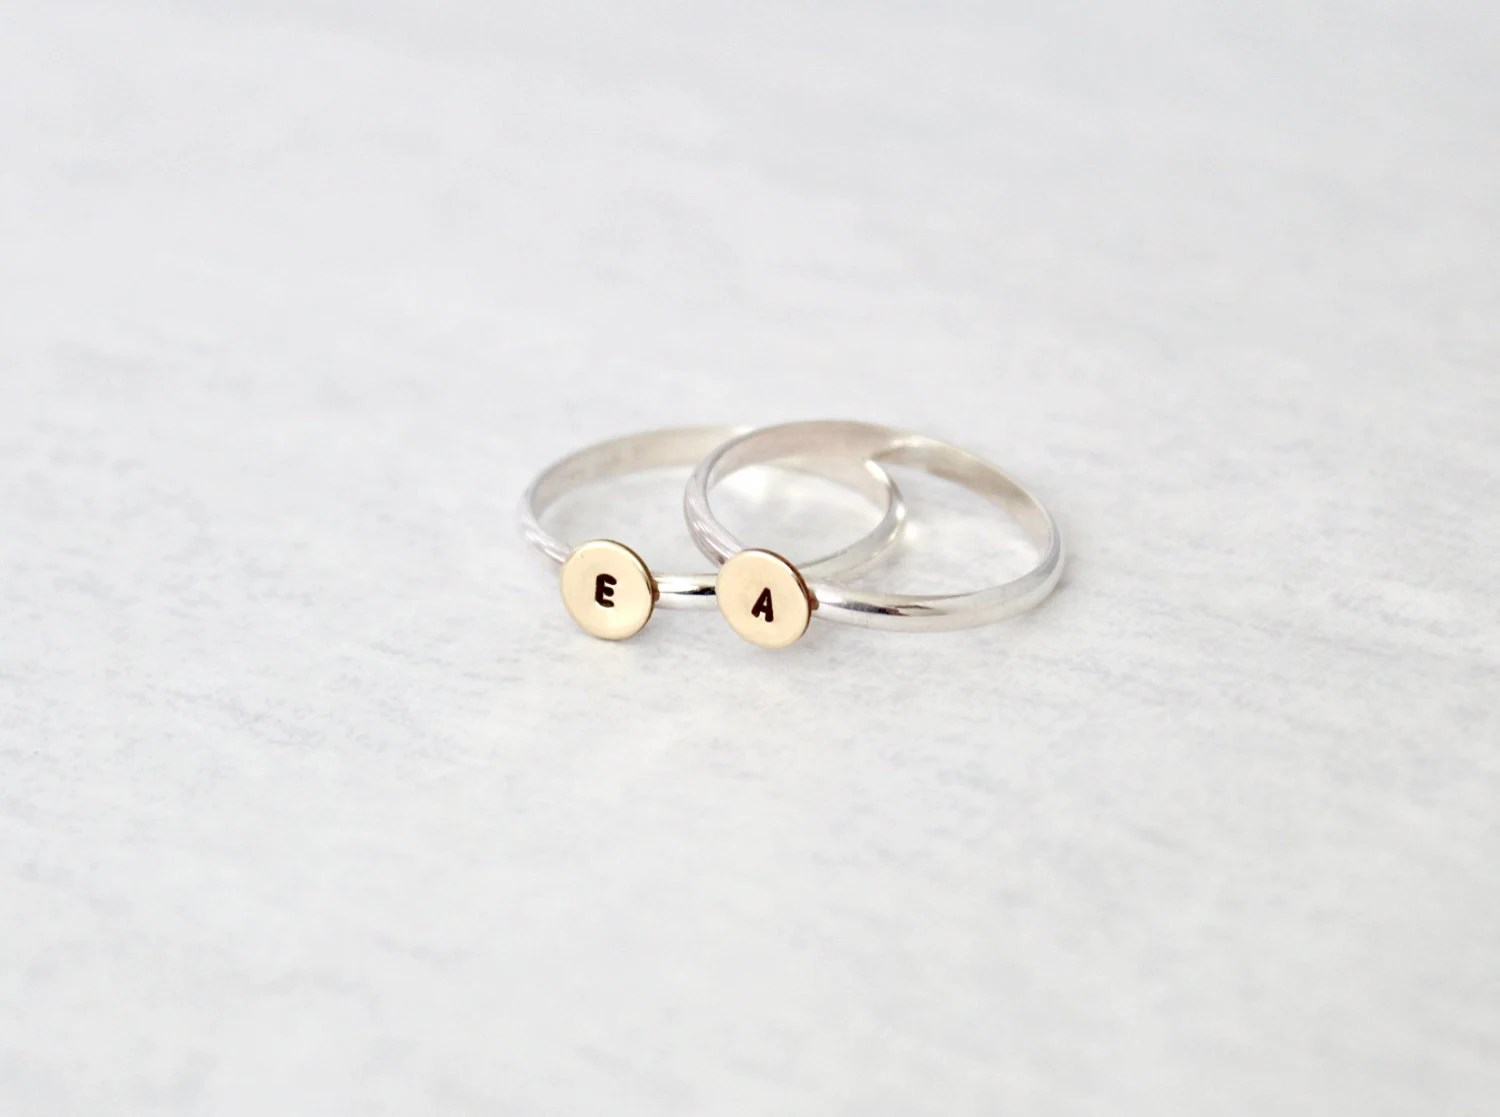 Hand Stamped Sterling Silver Ring. Personalized ring with